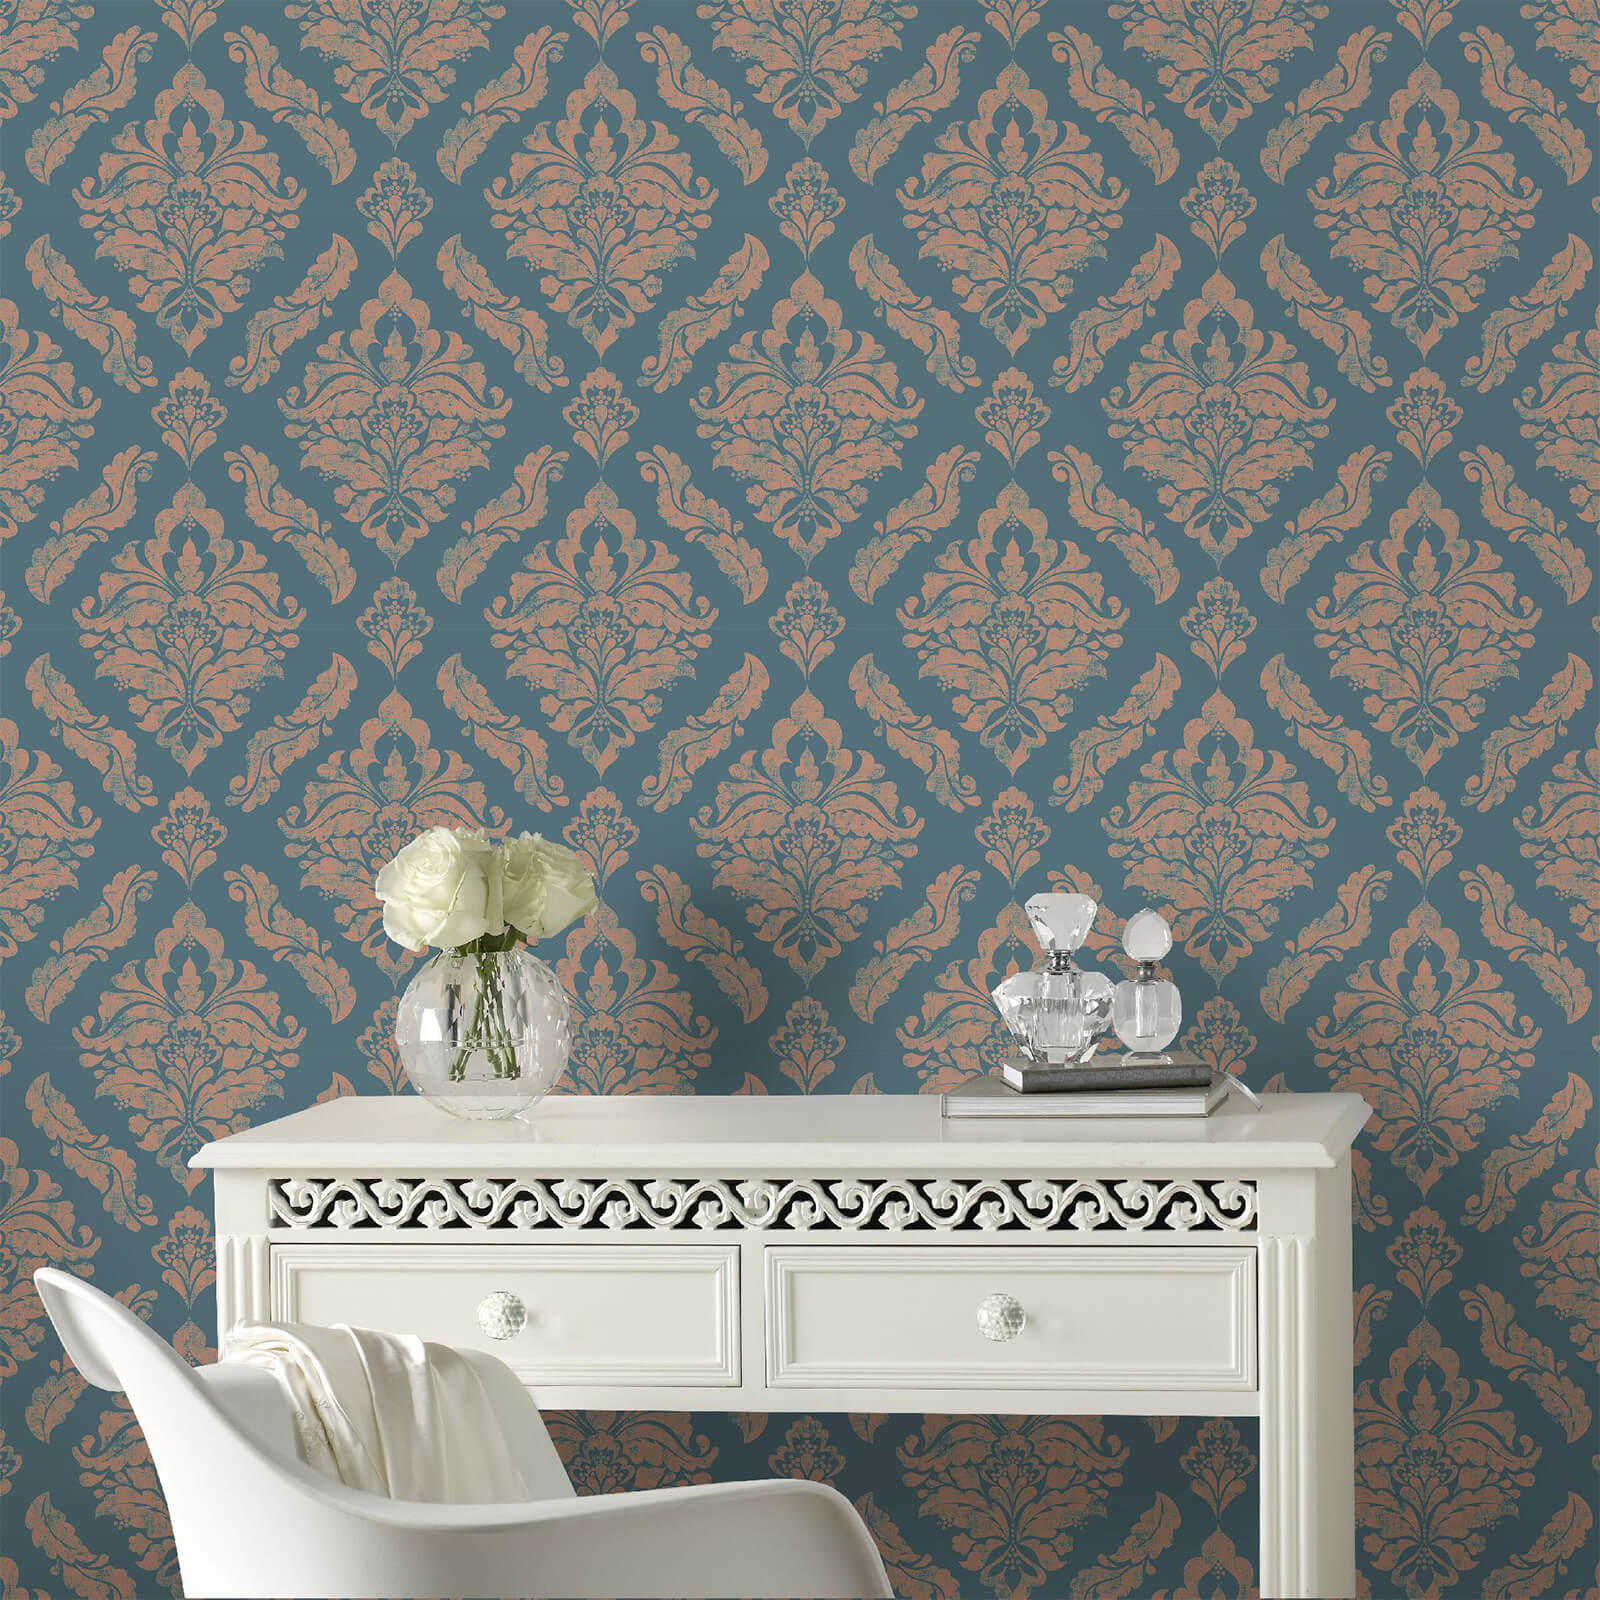 Boutique Turquoise Damaris Damask Wallpaper